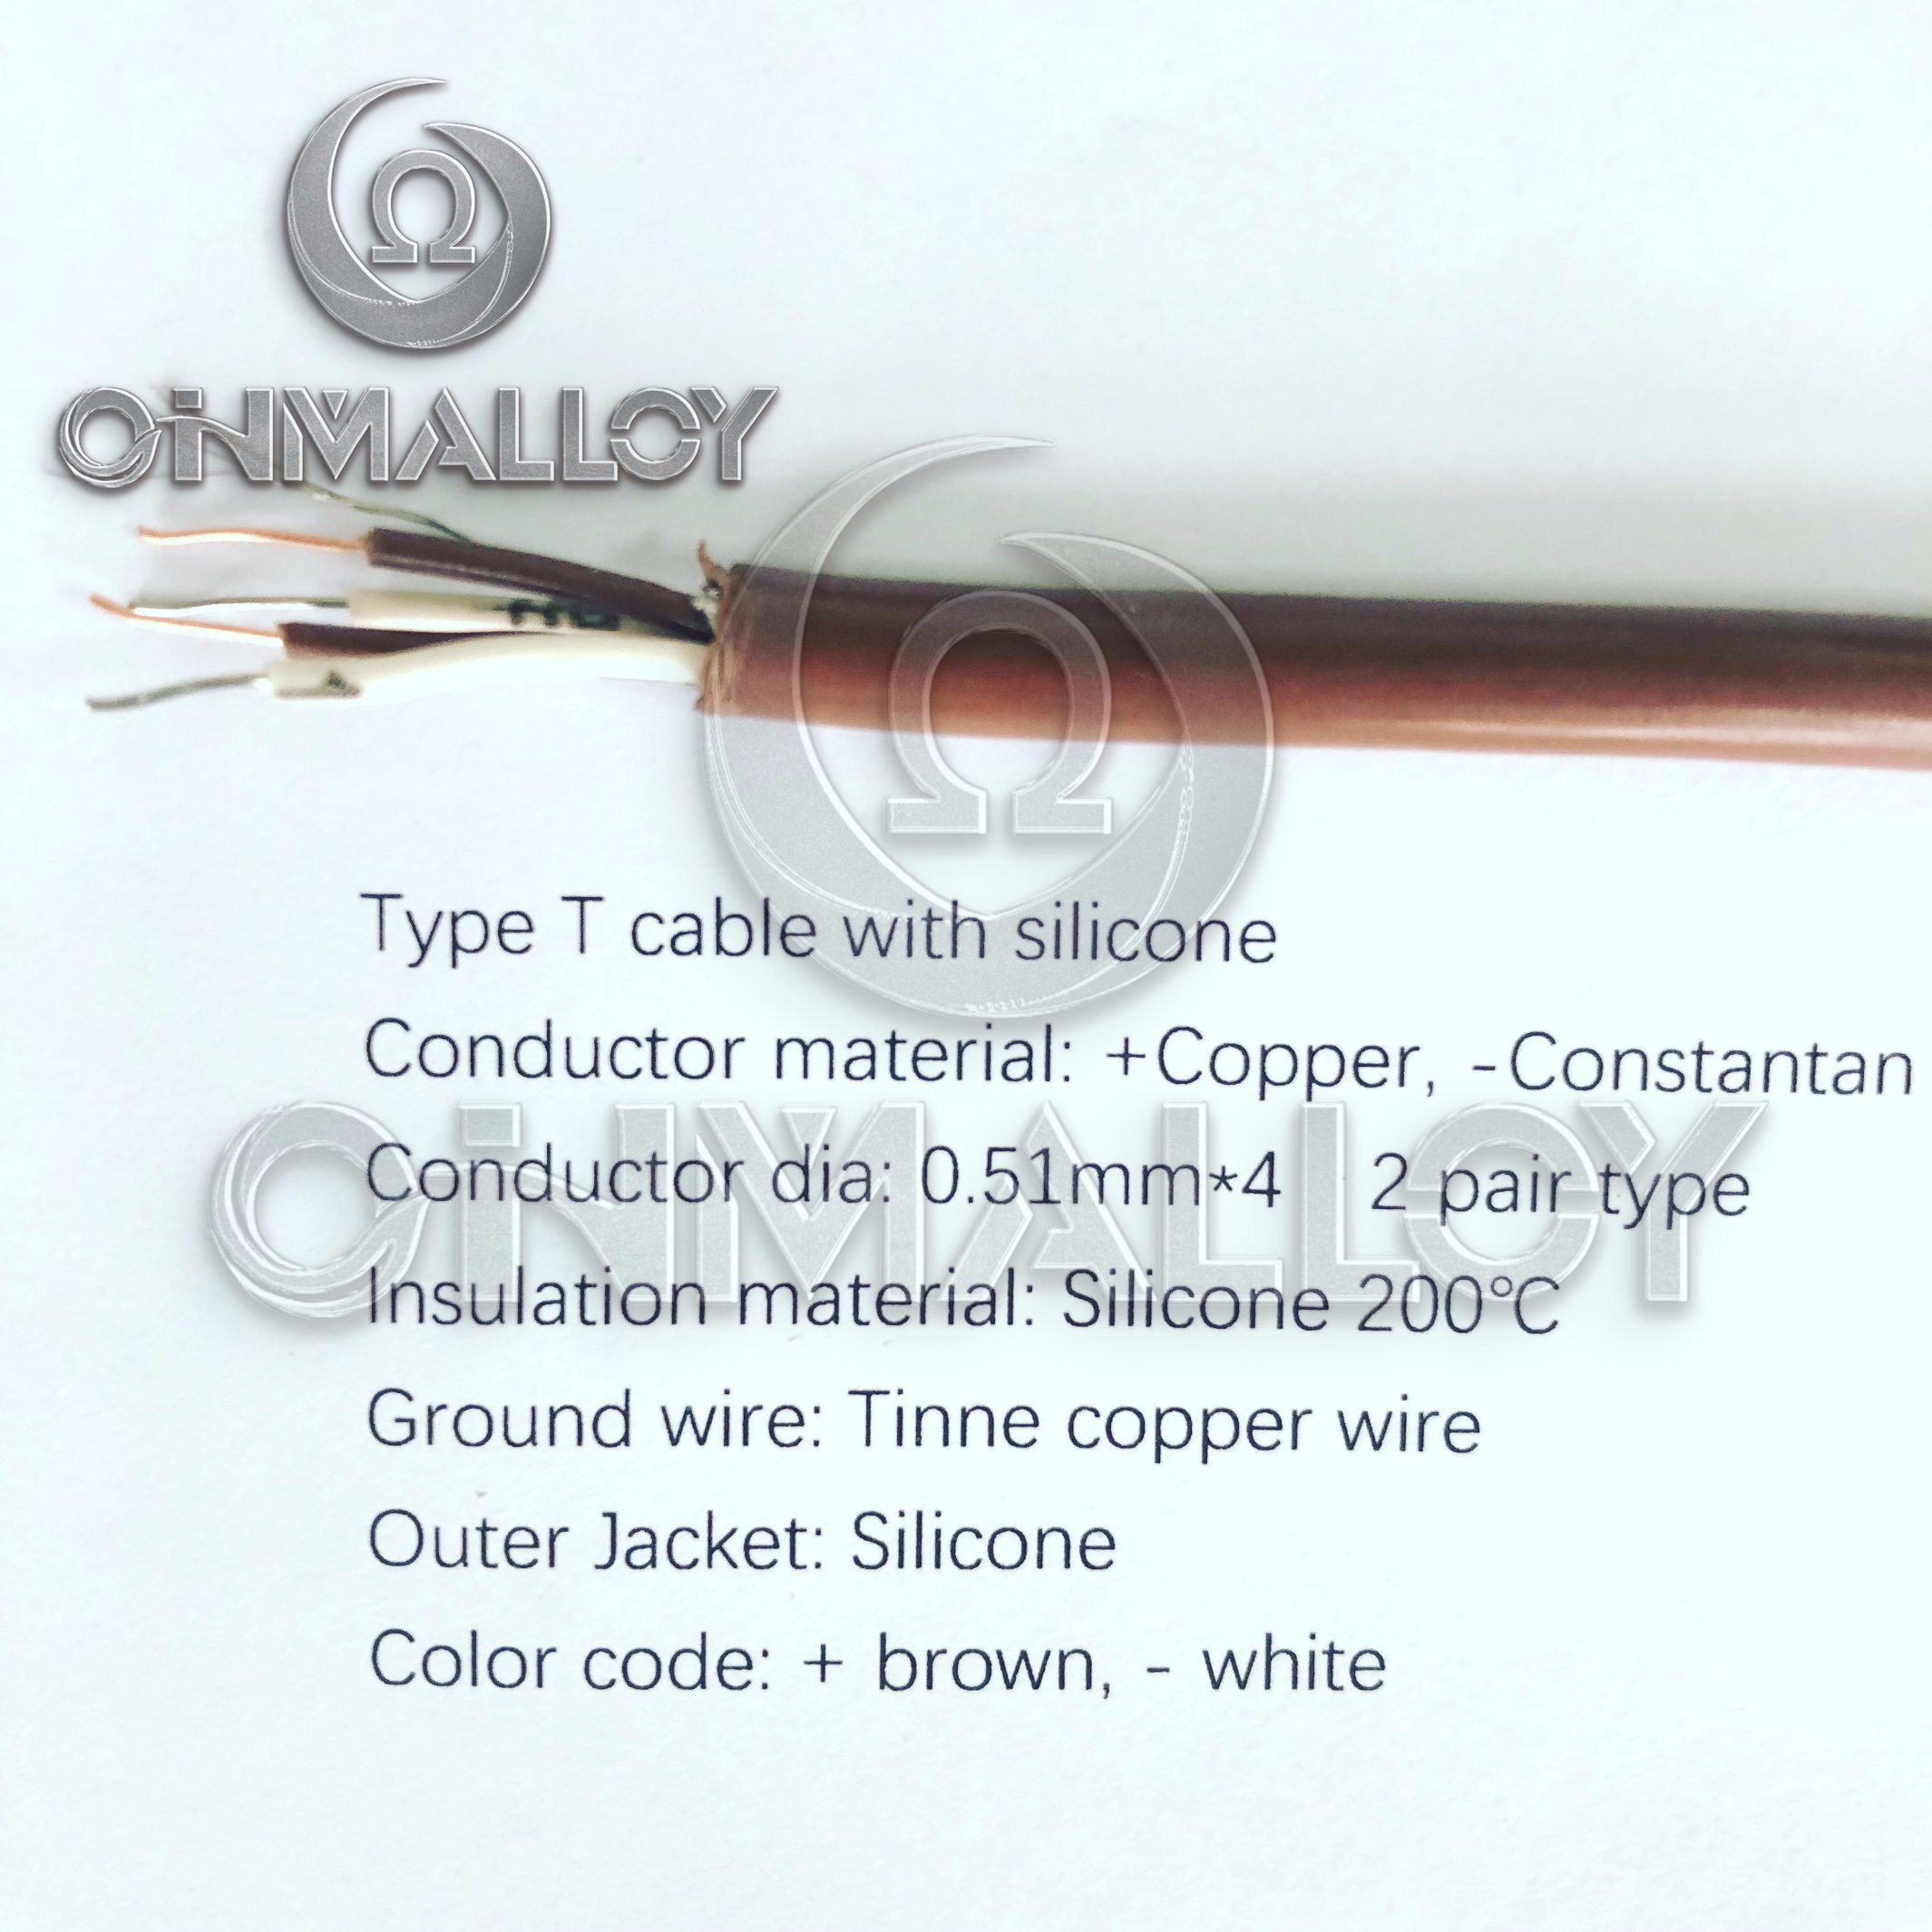 Type T Thermocouple Cable Silicone 200 Degree Insulated Wire 0.51mmx4